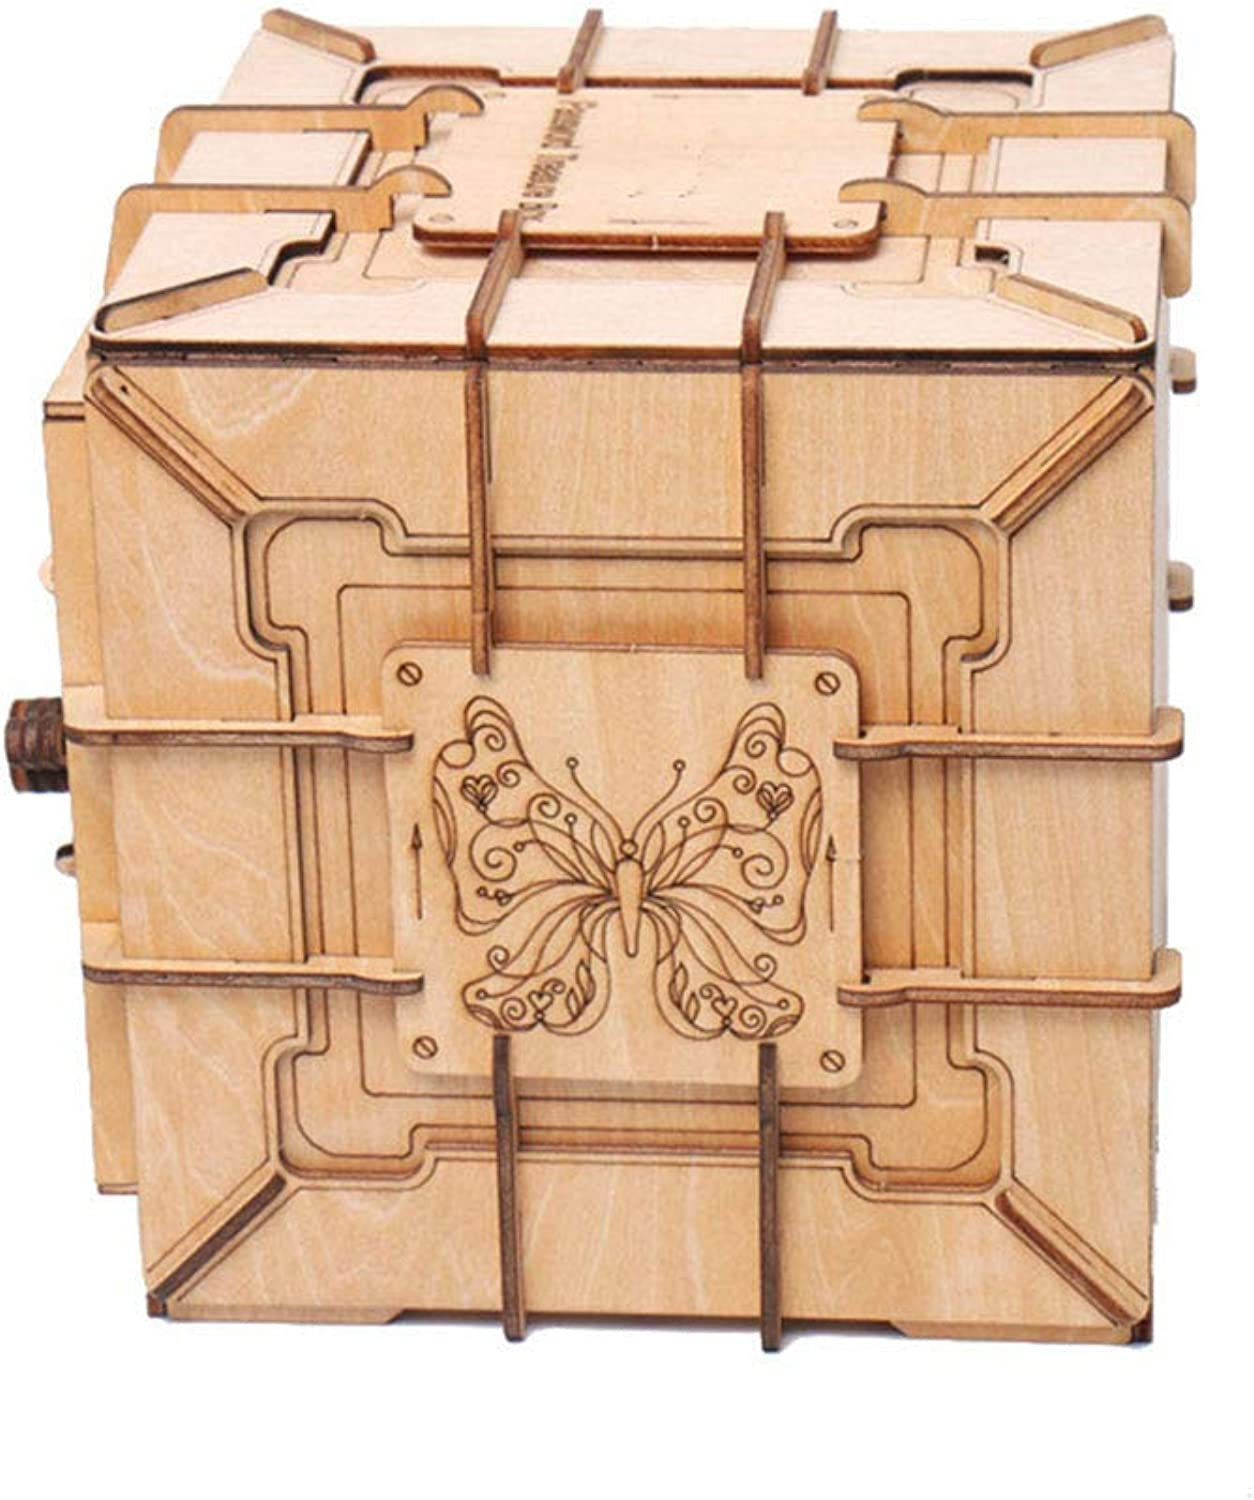 3D Wooden Puzzle Mechanical Transmission Model Password Box Assembly Toy DIY Parenting Creative Gift Teen Puzzle